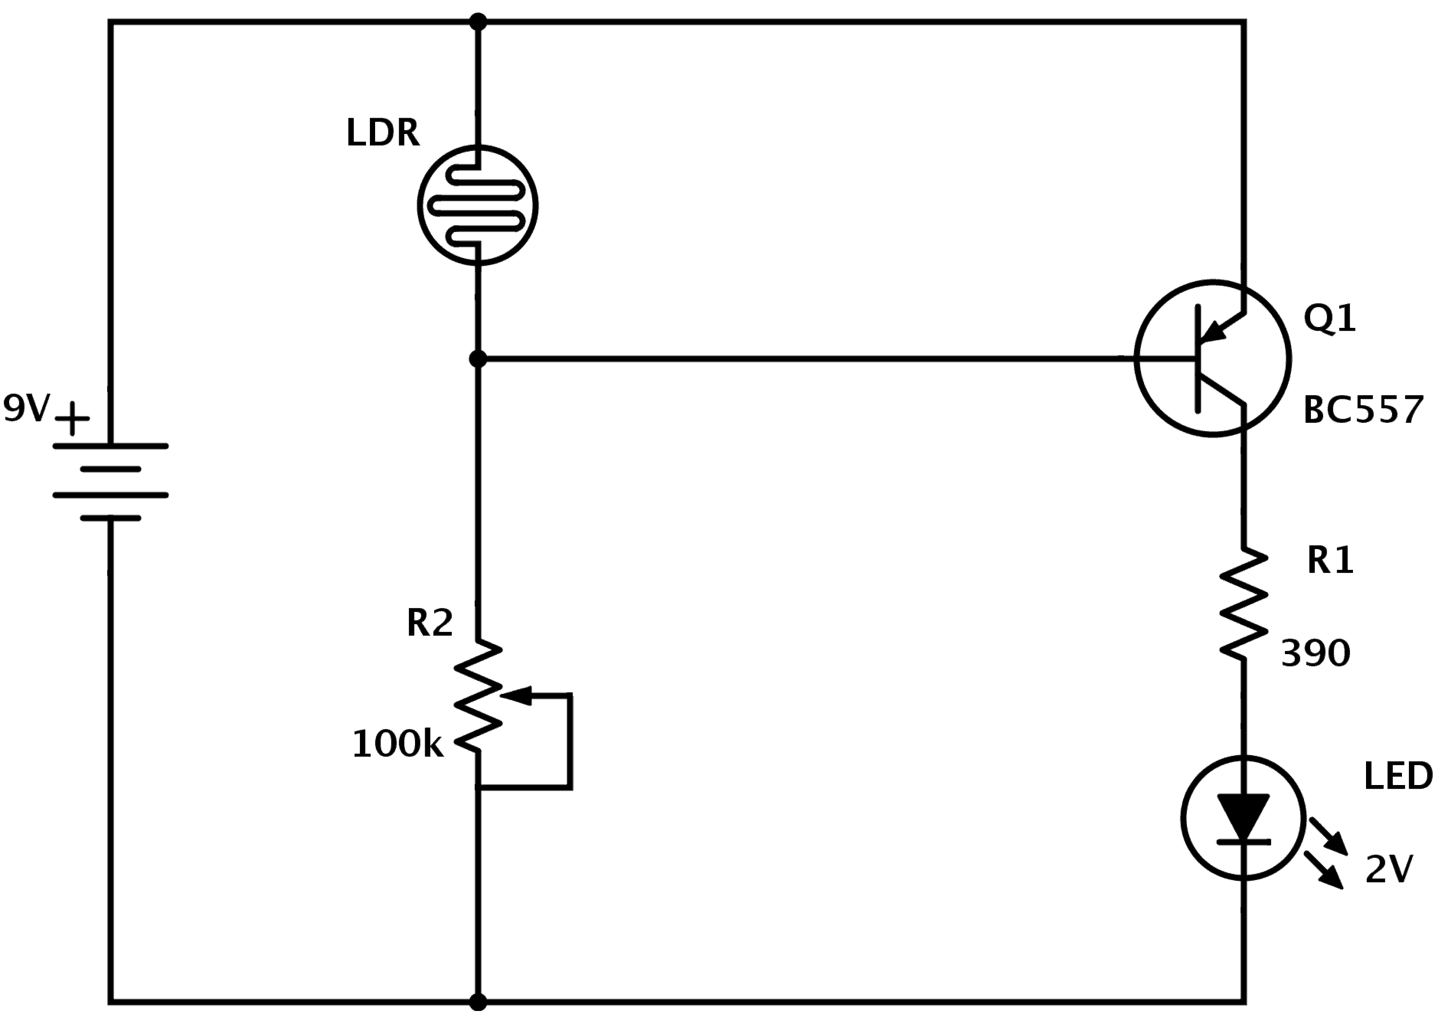 Ldr Circuit Diagram Build Electronic Circuits Proper Way To Connect Multiple Leds In Parallel Is Like This Each Led With Pnp Transistor Dark Detector